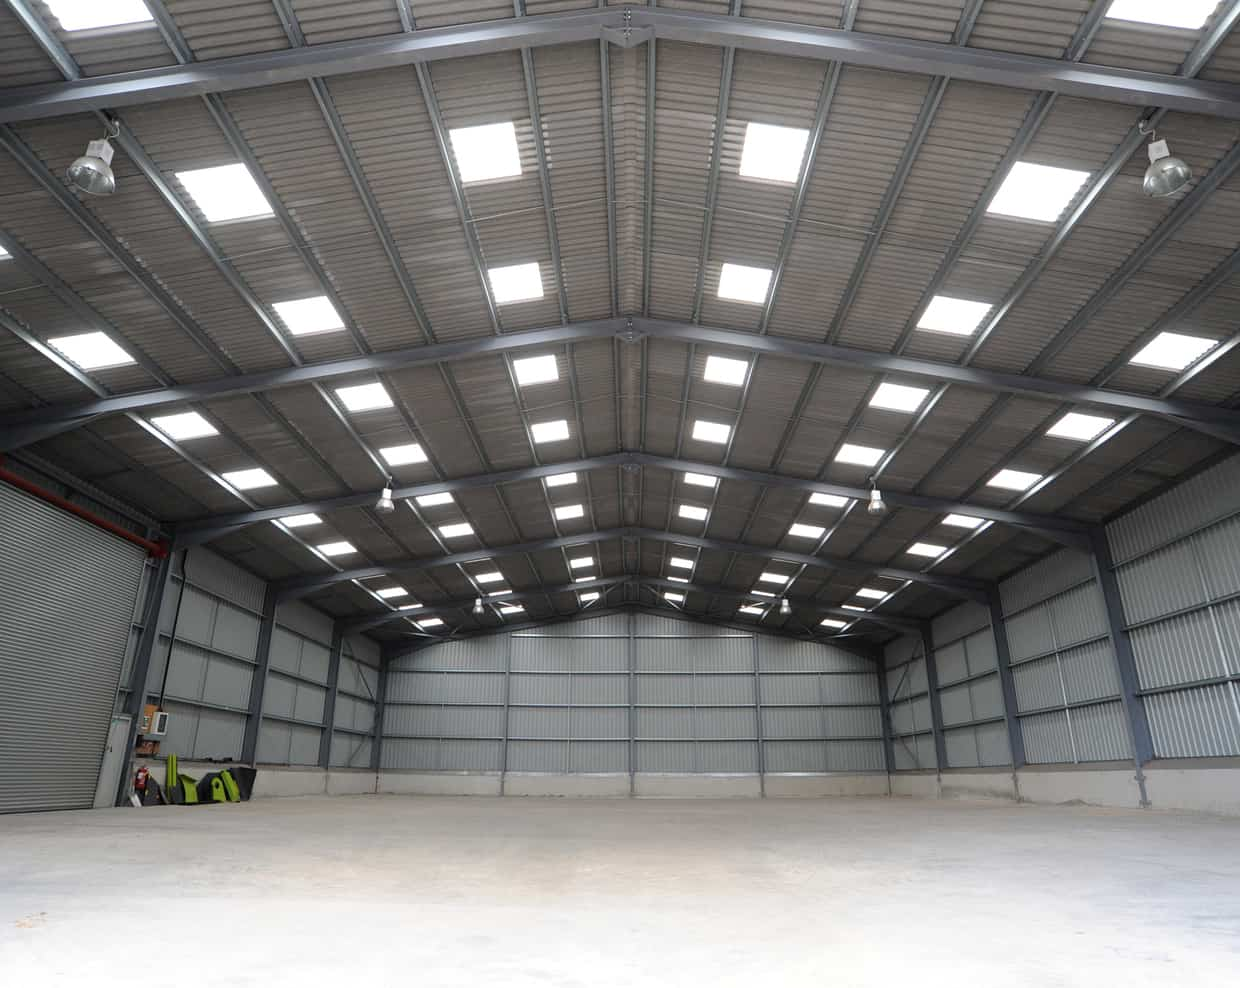 22000 sqft Commercial/ Industrial Warehouse with 100+ KW Power, 8 meter Height, Insulated Ceiling